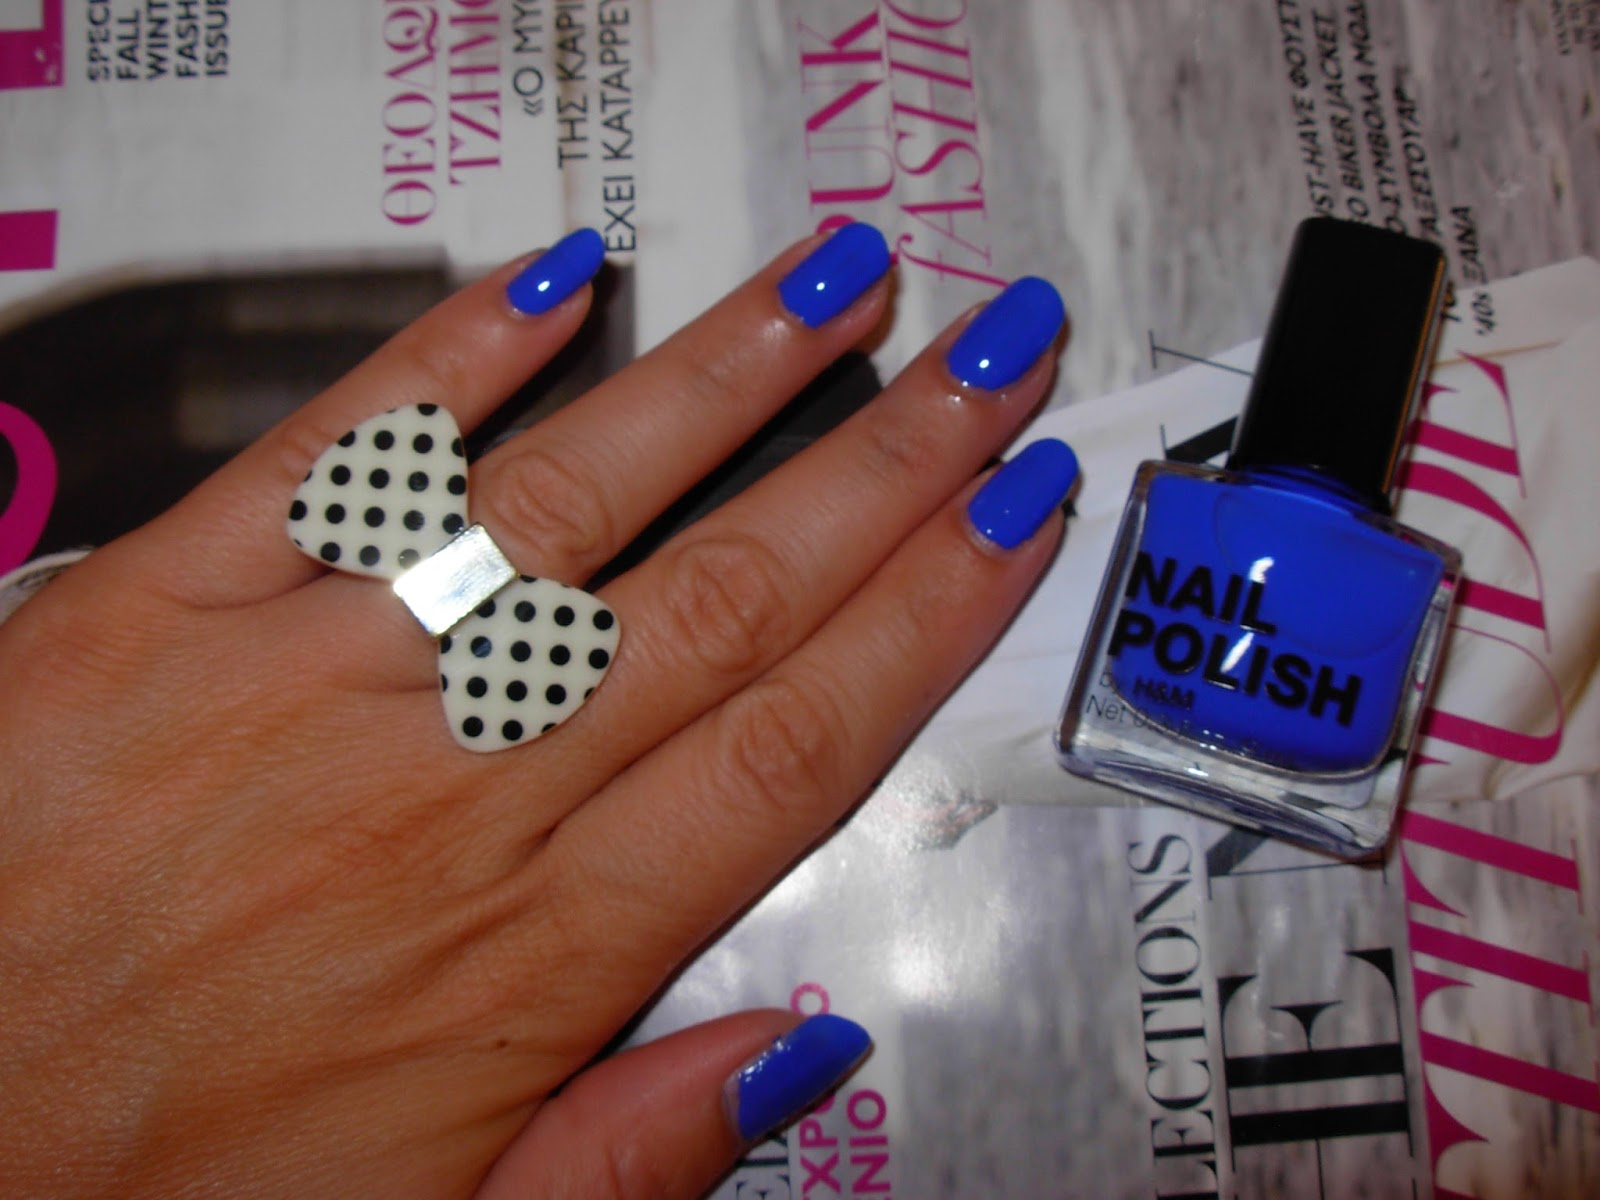 Nails 'serenity Now' H&m